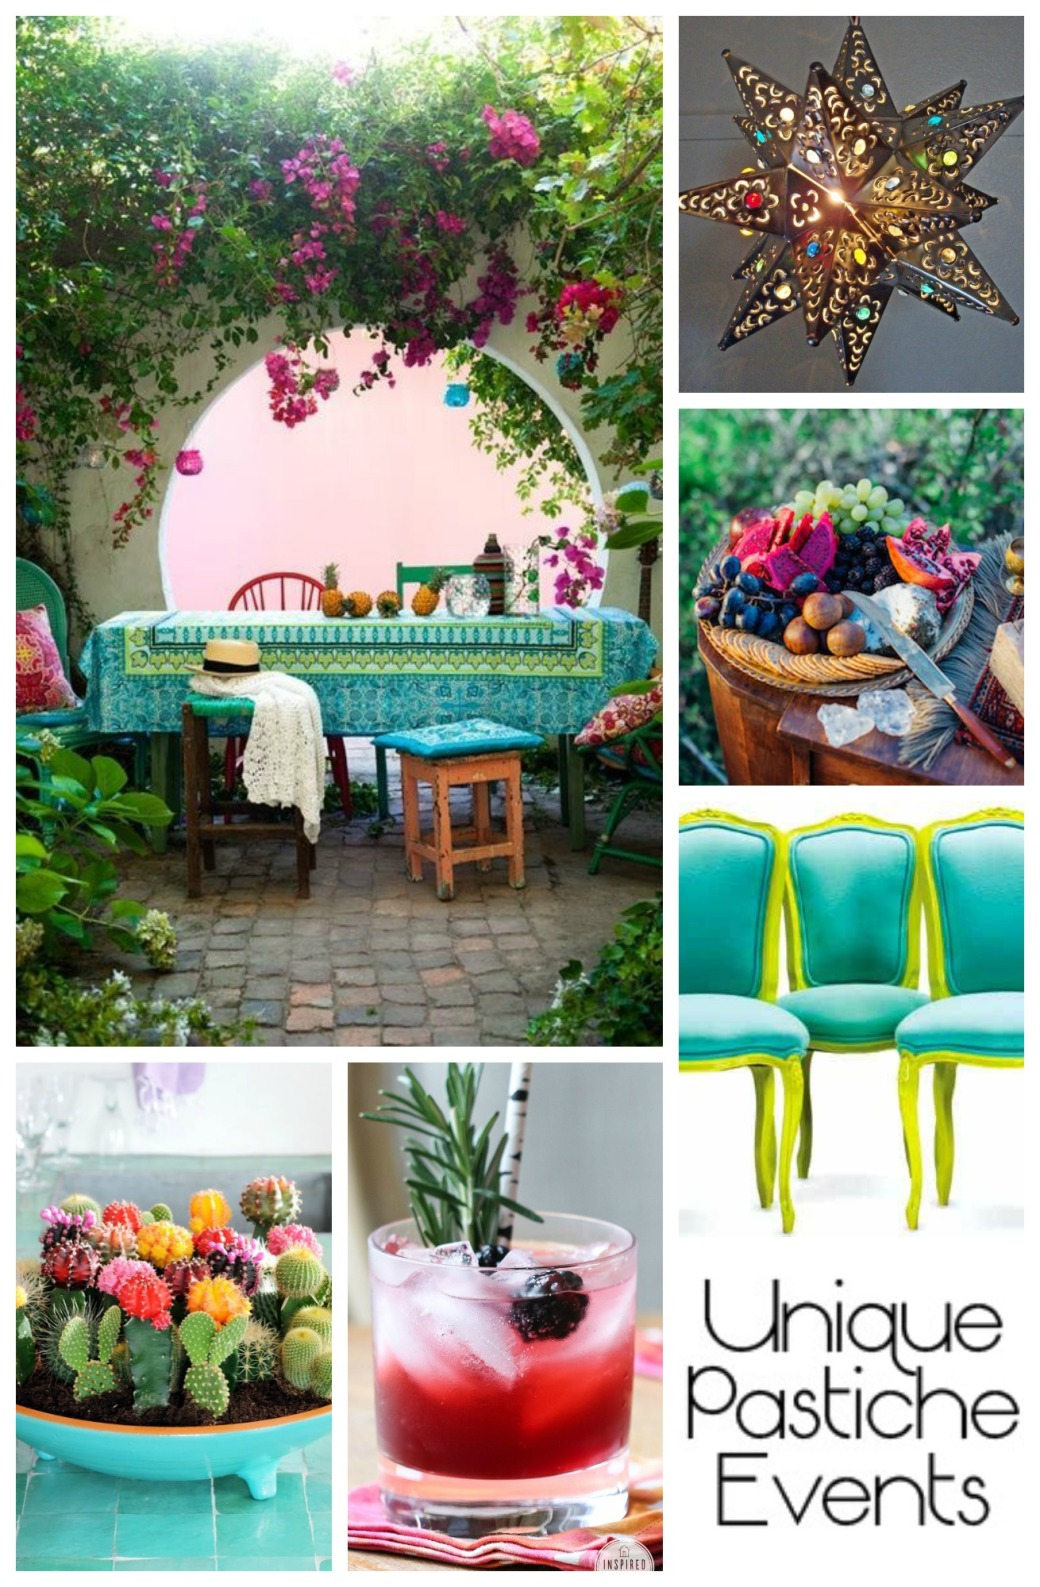 Bohemian Patio Party Ideas Enjoy the full post: https://uniquepasticheevents.com/2015/05/20/bohemian-patio-party-ideas/